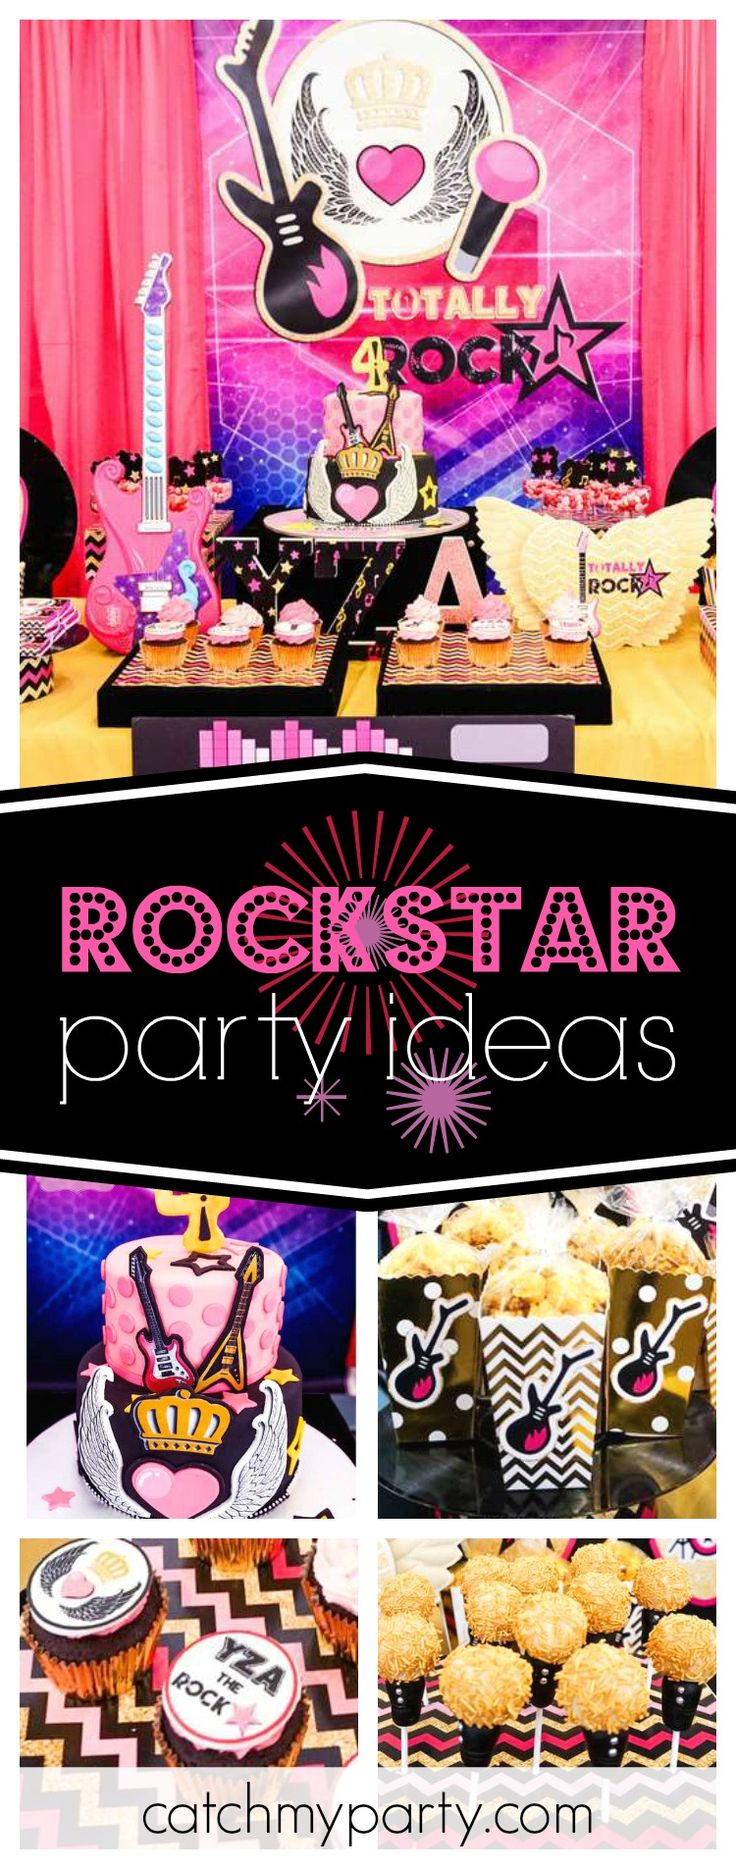 How To Throw The Ultimate Pop Star Party Ideas Activities Amp Free - Take a a look at this epic totally rockstar birthday party love the microphone cake pops